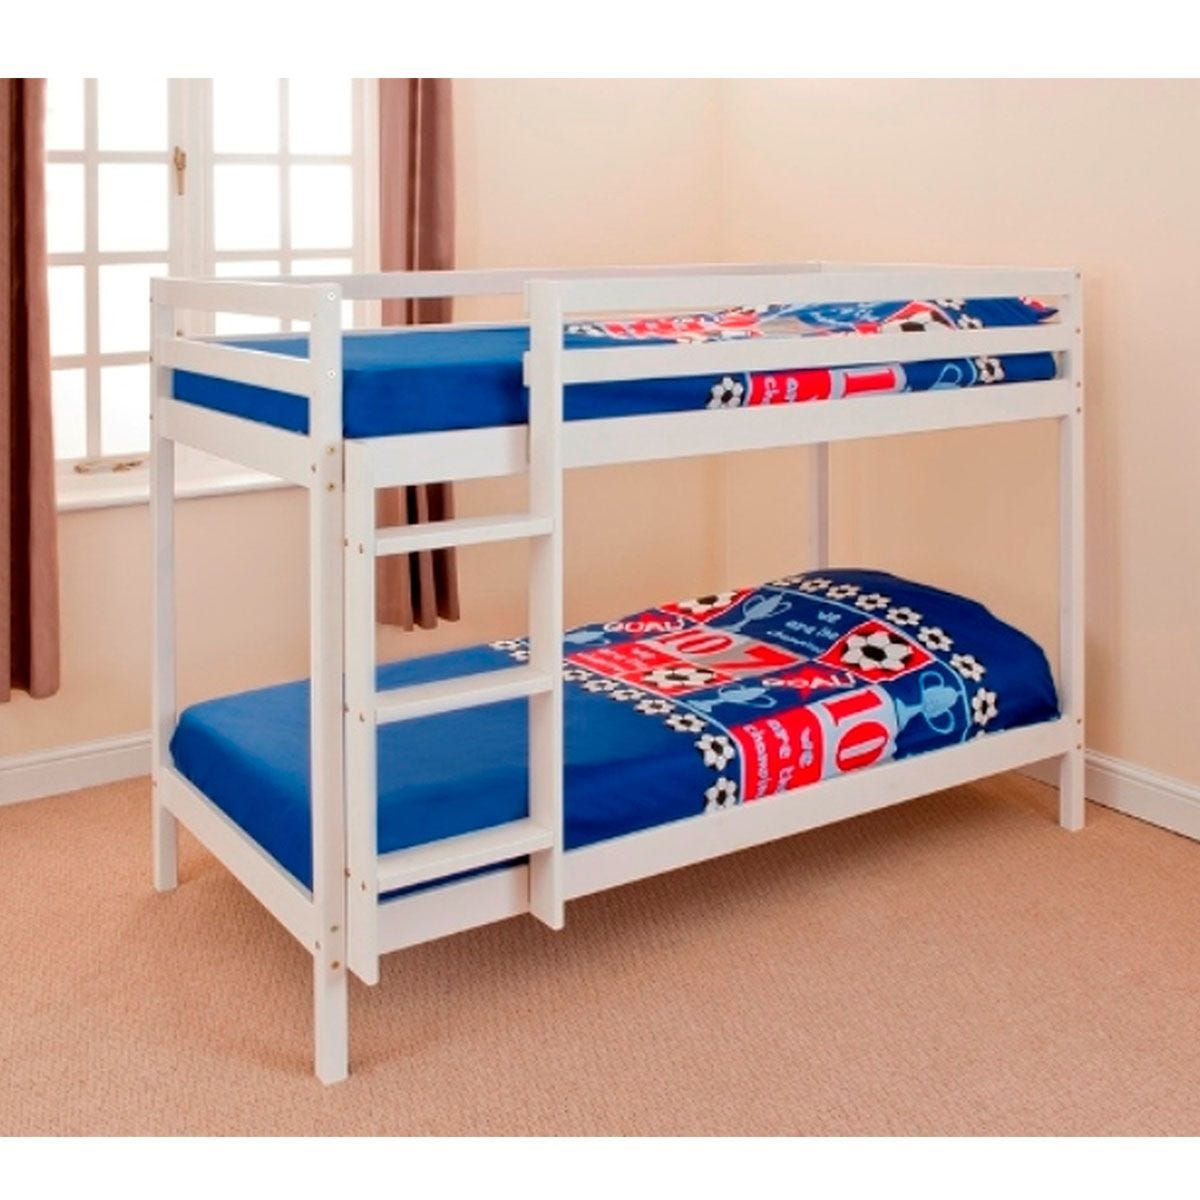 Hillingdon Bunk Bed - White